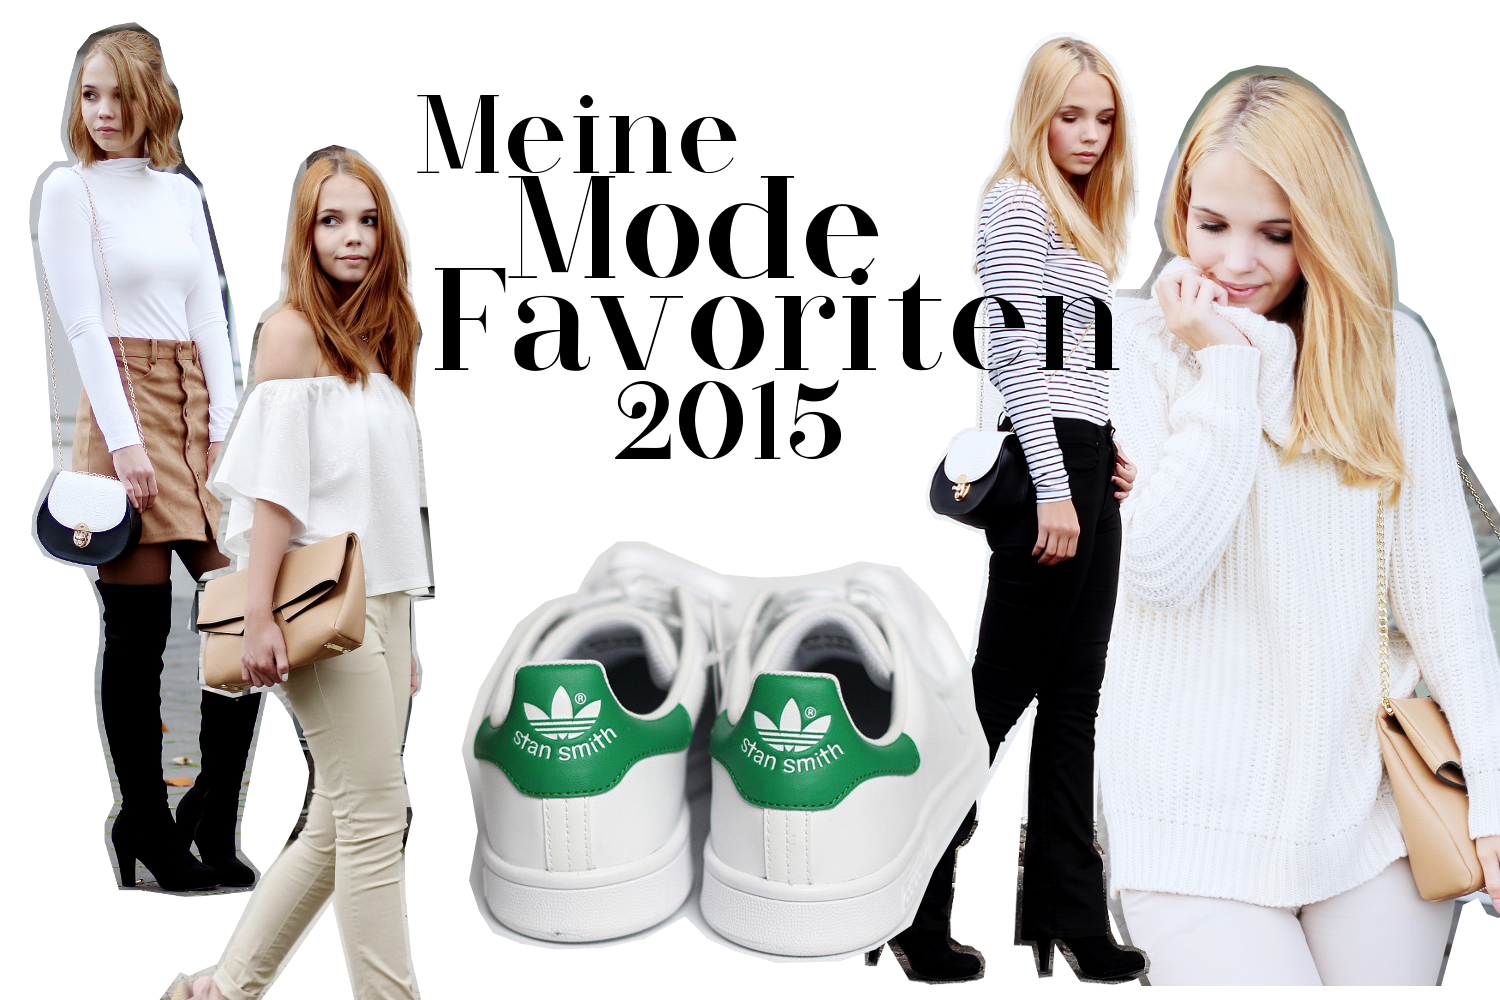 Meine Mode Favoriten 2015